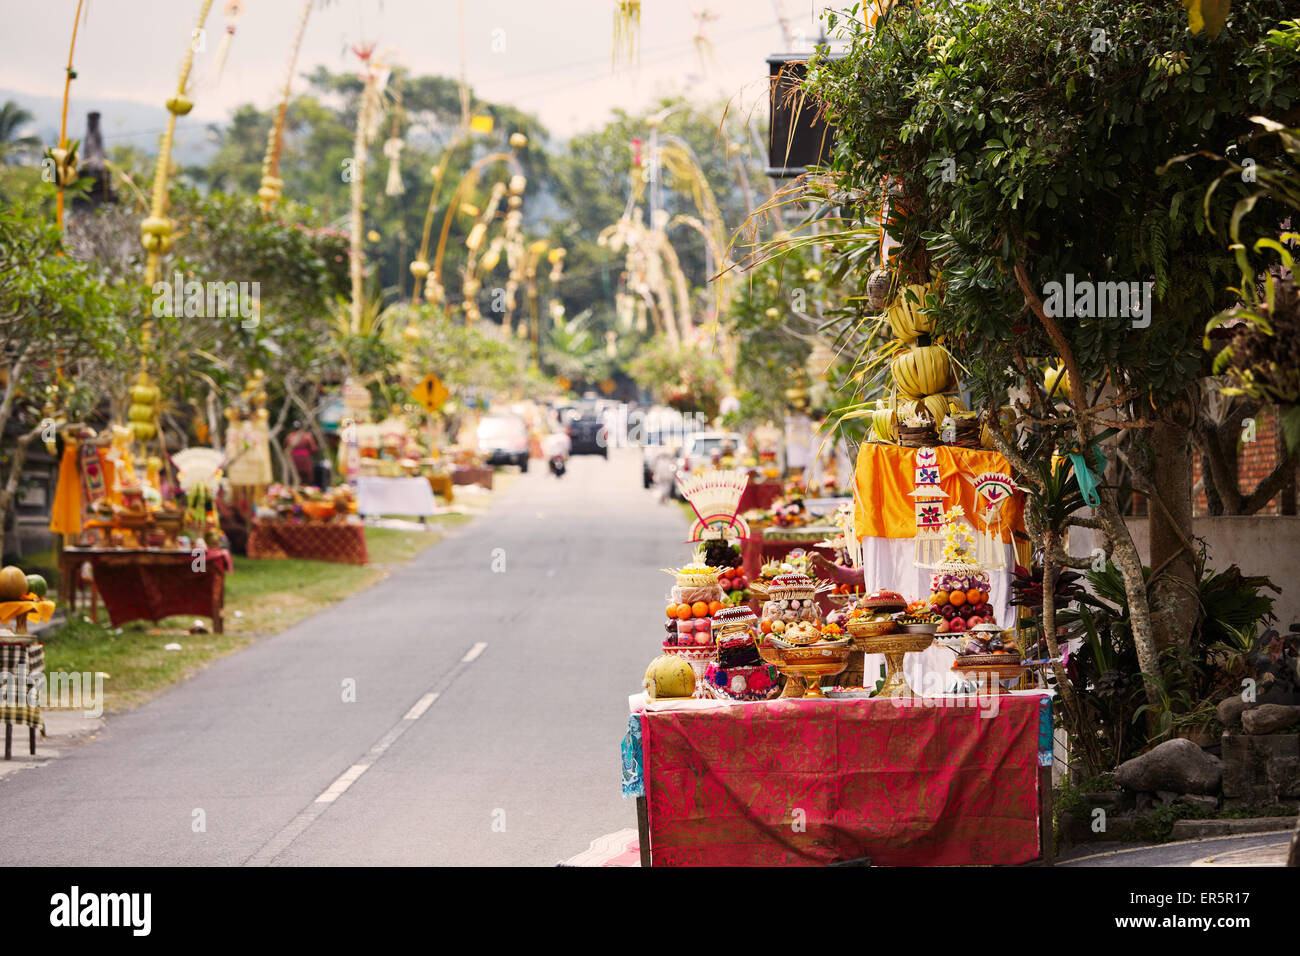 Decorated offering tables along a street, Tugu Br. Tinungan, Bali, Indonesia - Stock Image